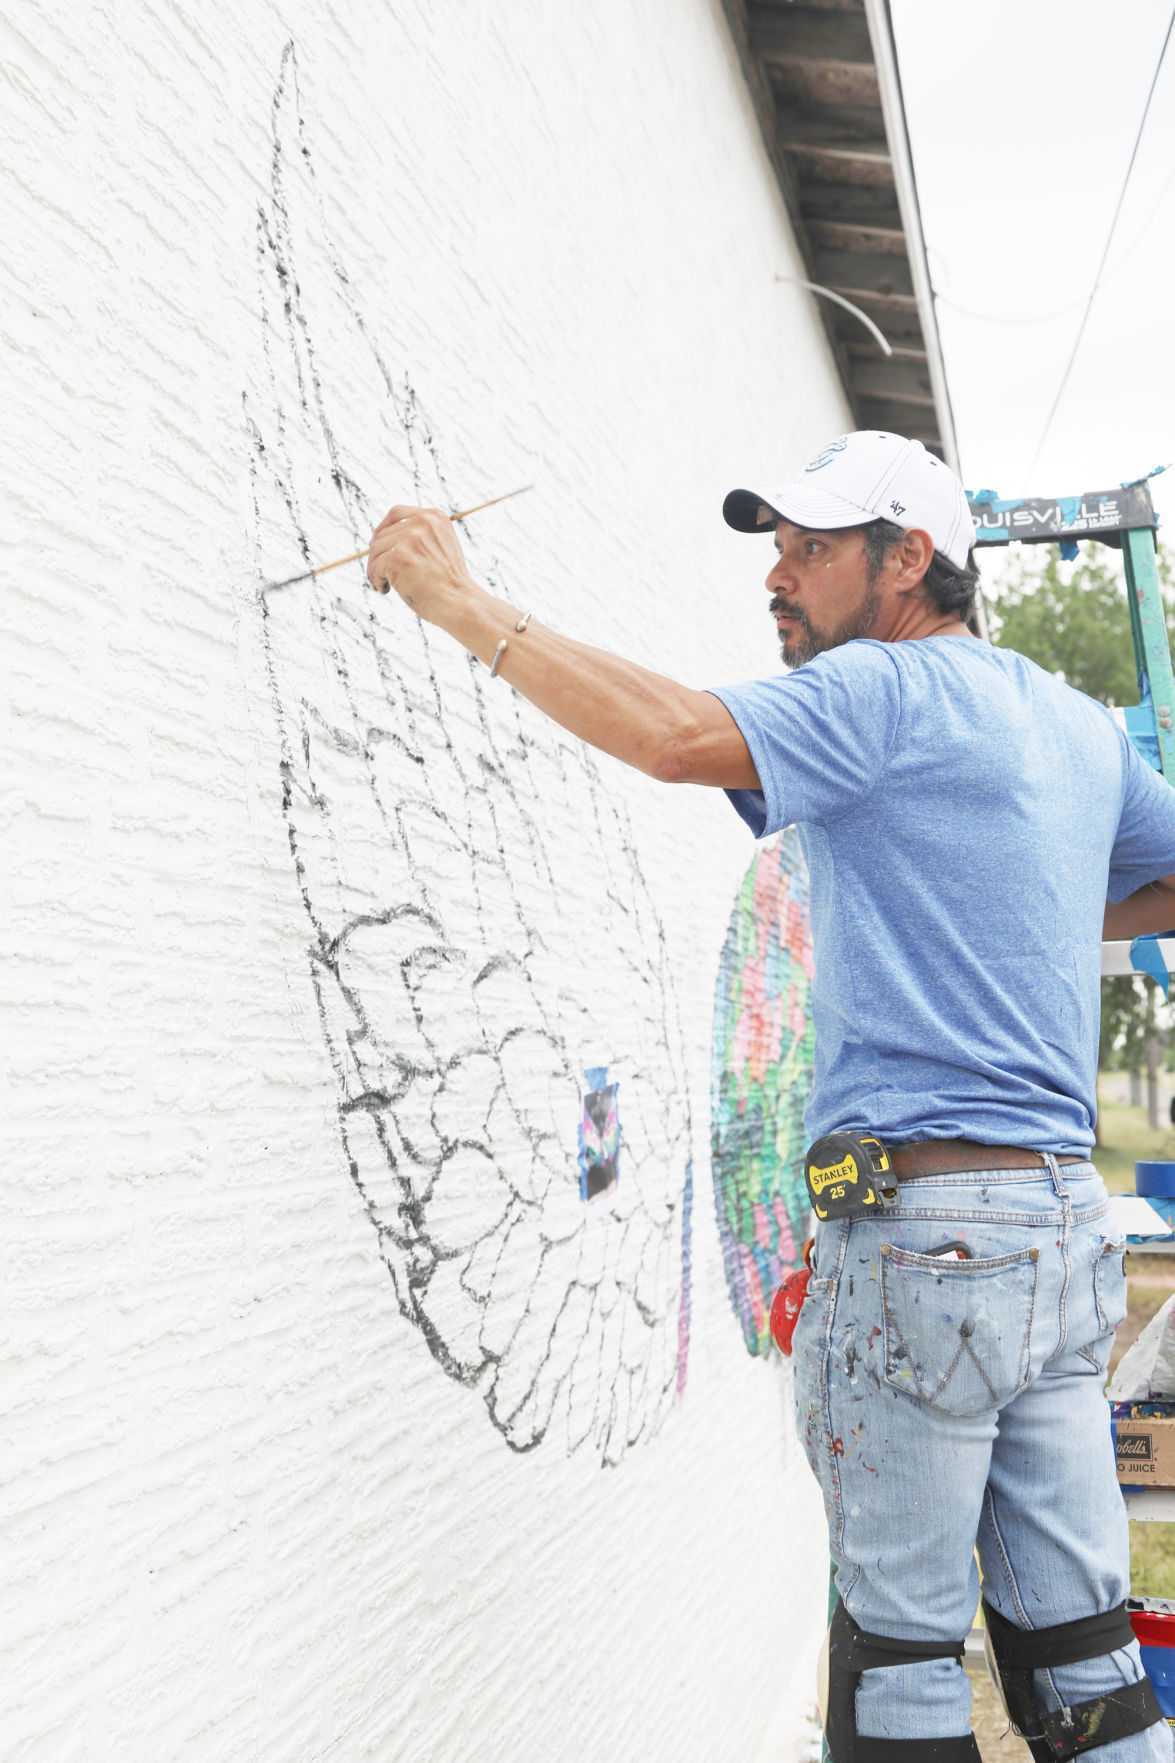 Owner hopeful At the Crossing will spark new ideas, community involvement